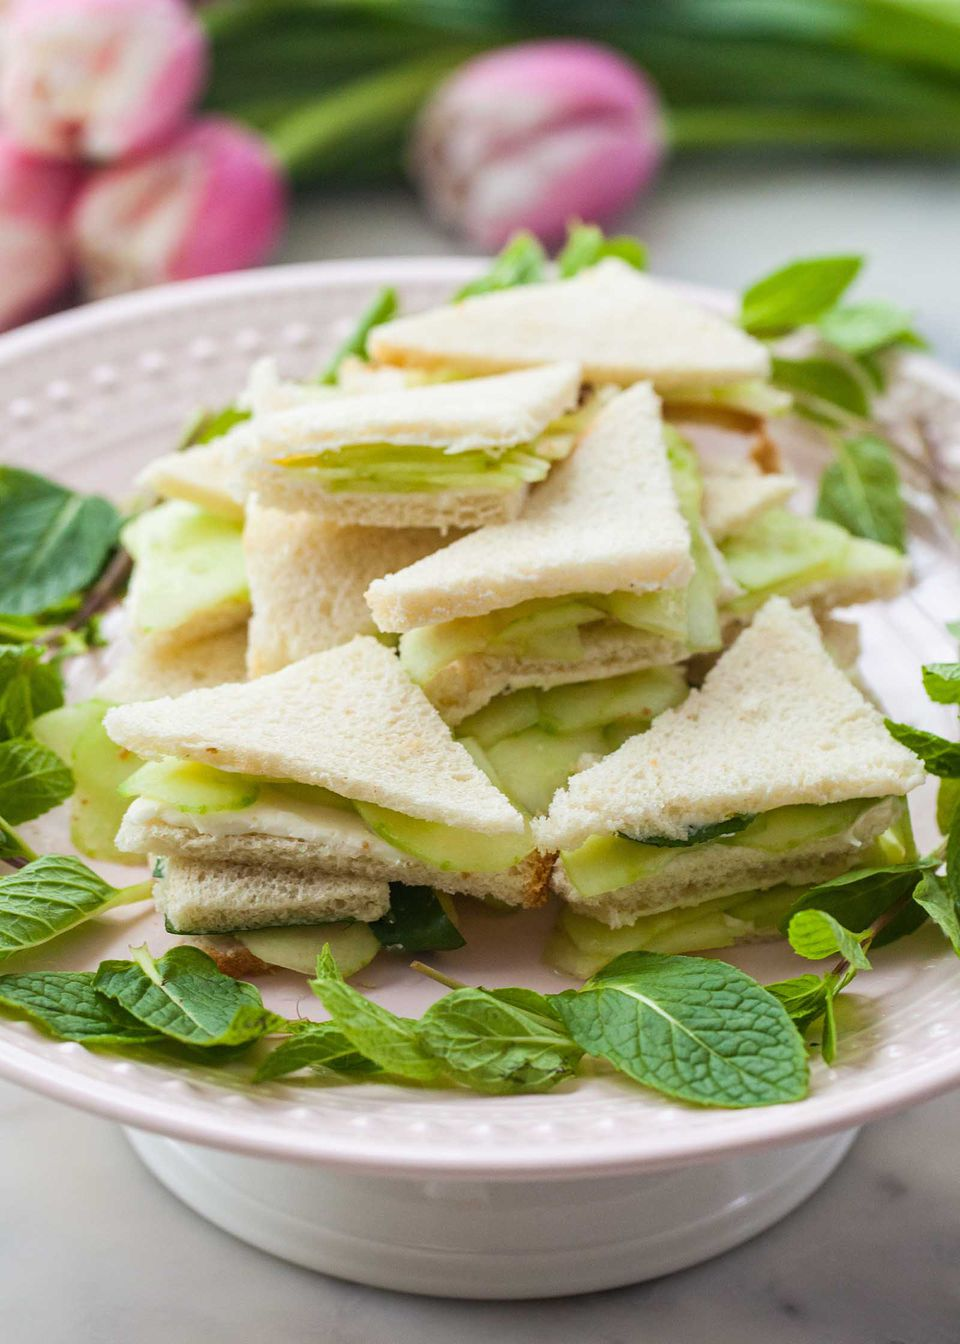 Side view of cucumber finger sandwiches stacked on a cake plate. The sandwiches are cut into triangles and slices of cucumber are visible layered inside each one.